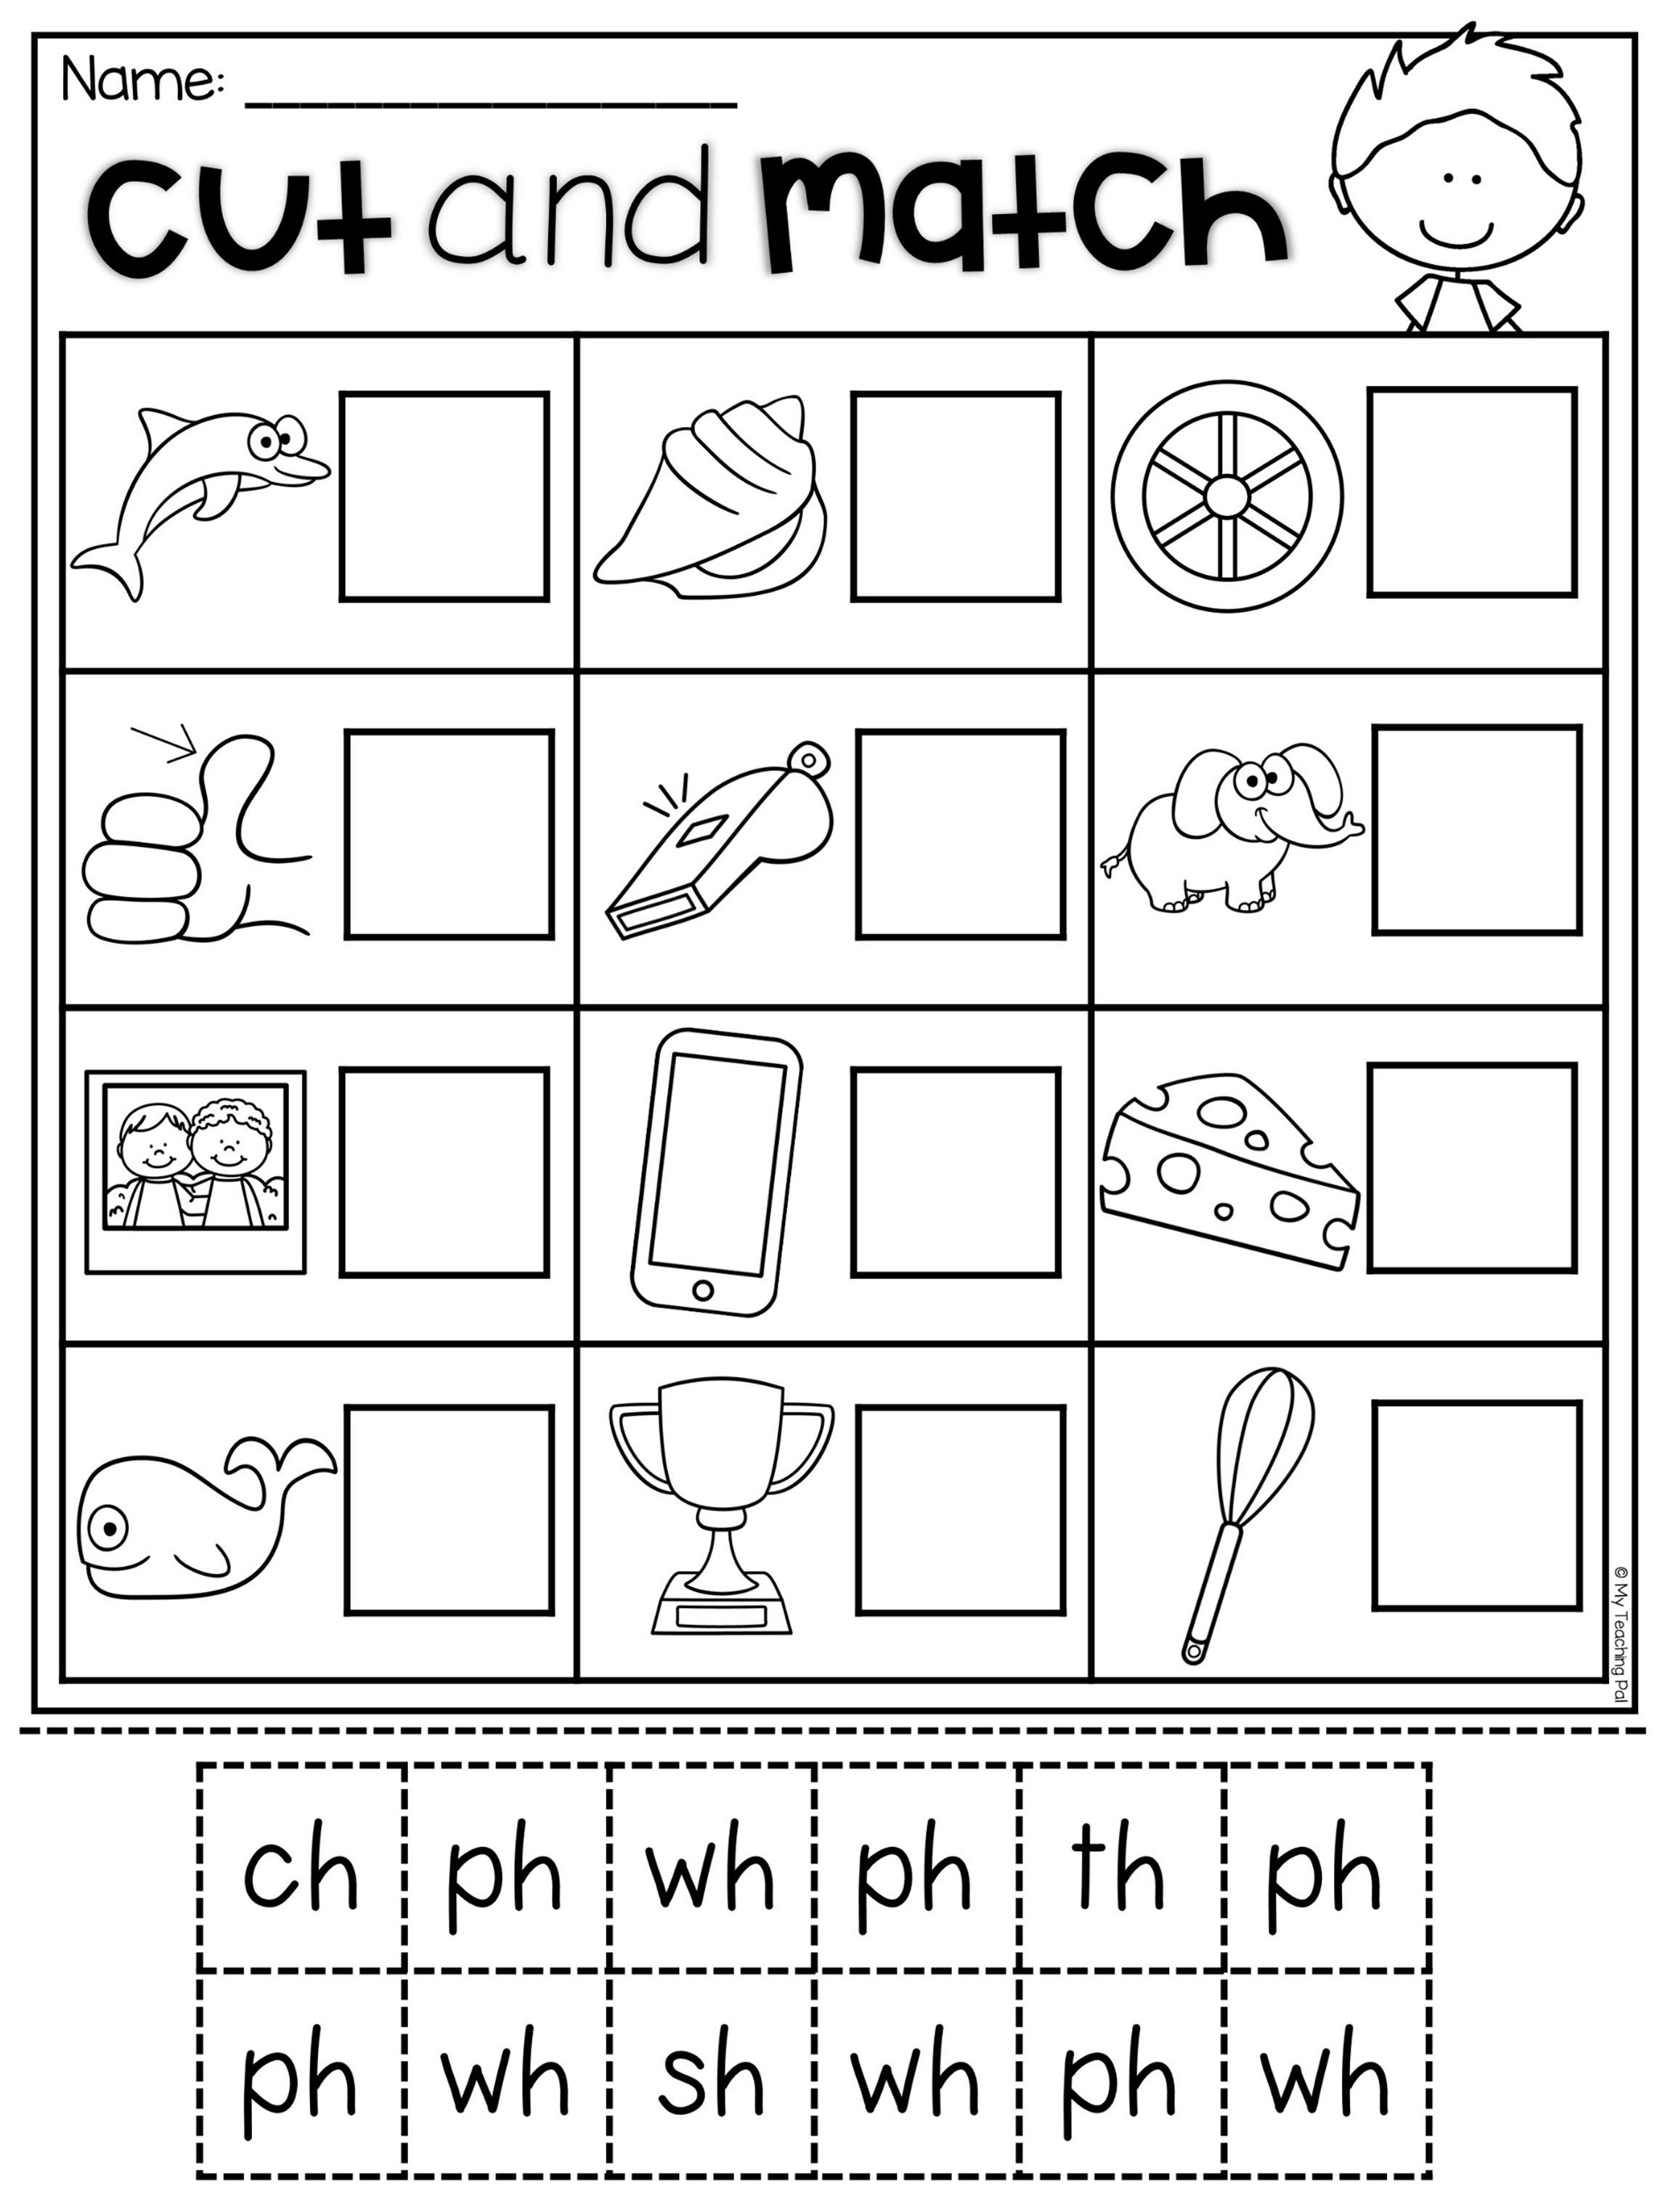 Digraph Worksheet Packet Ch Sh Th Wh Ph